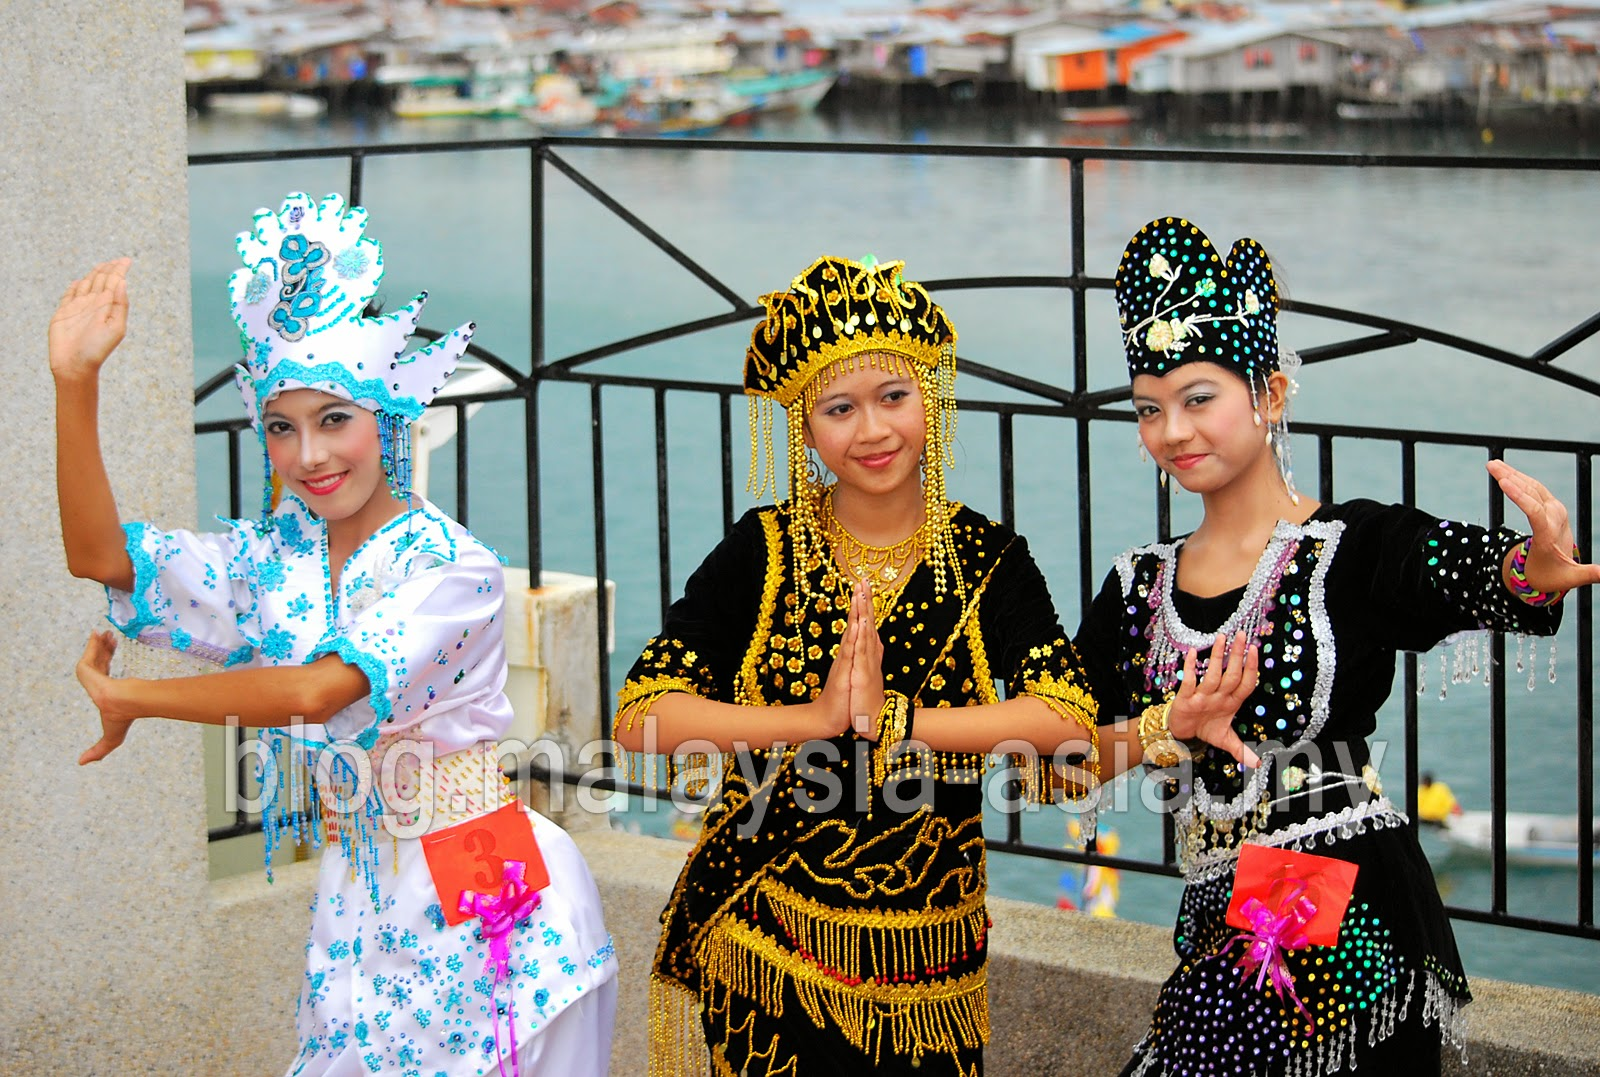 Malaysia Events and Festivals for 2015